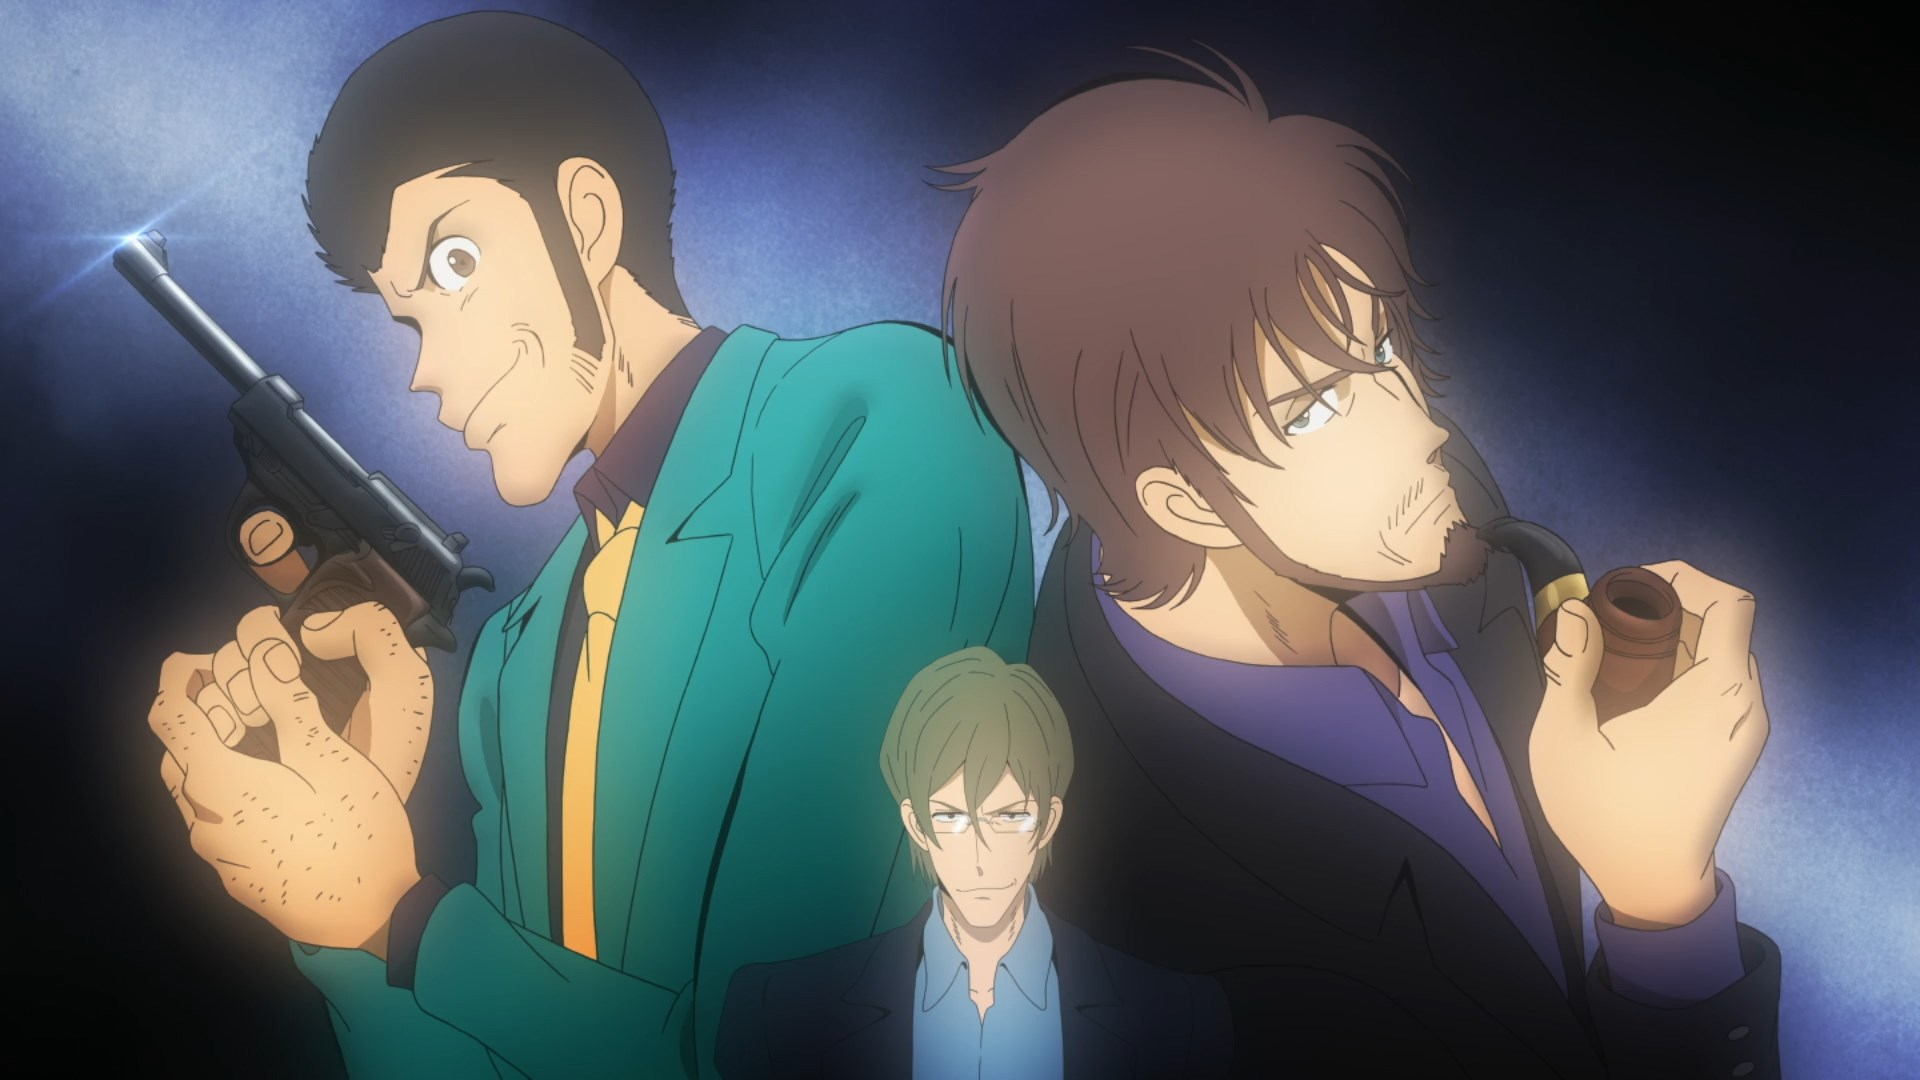 Lupin the Third Part 6 - 02